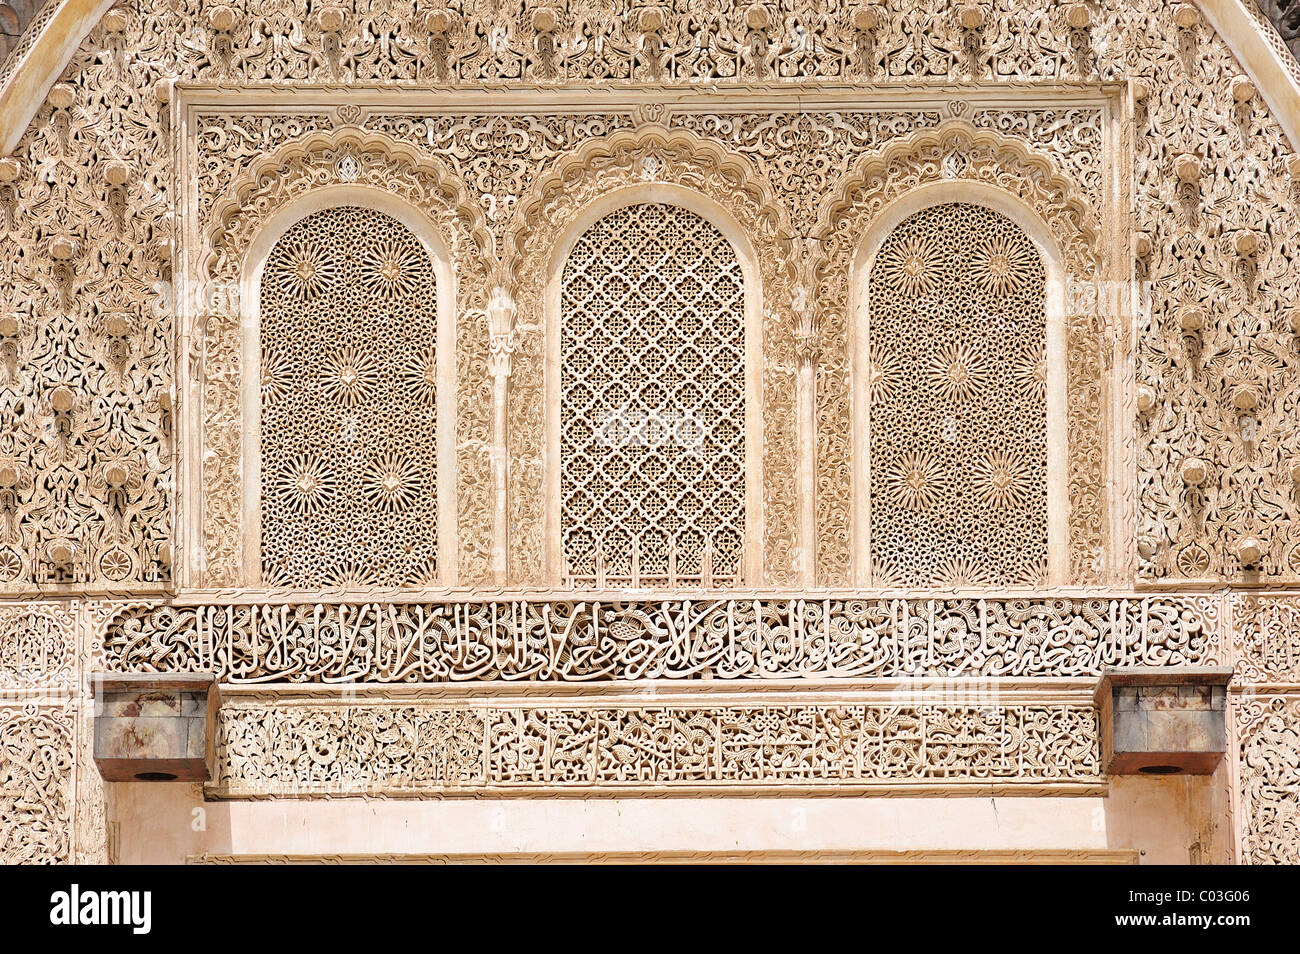 Elaborate stucco ornaments, arabesques and Koranic verses made of plaster at the Medersa Bou Inania Koran School, - Stock Image